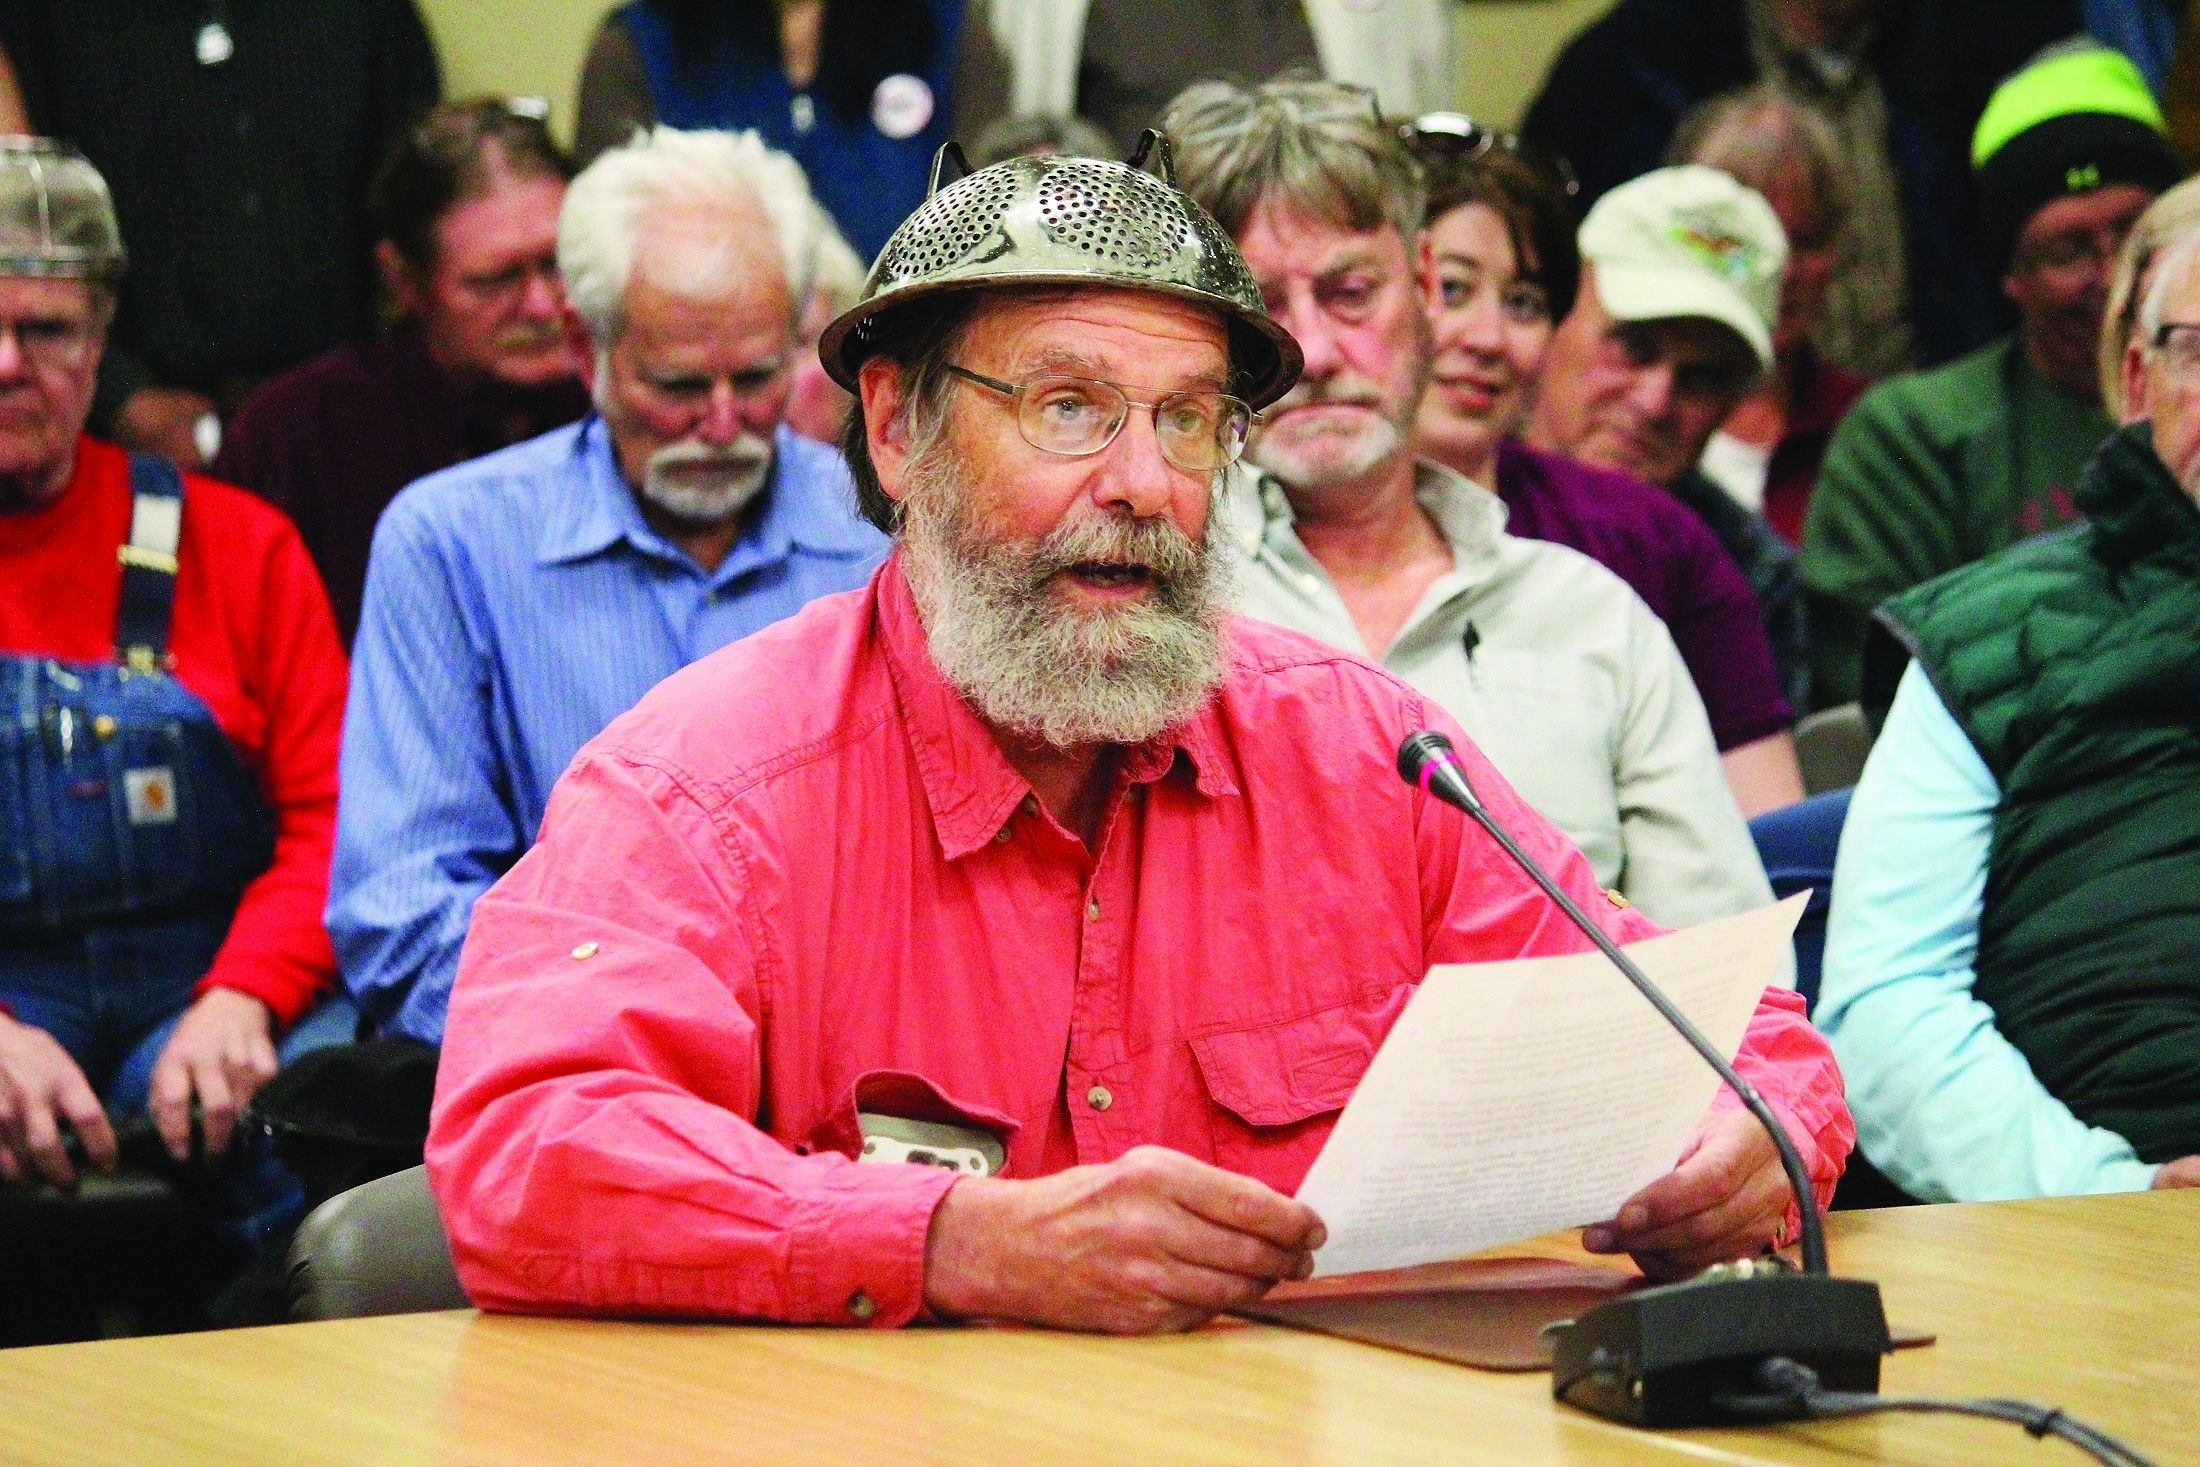 Pastafarian pastor leads prayer at Alaska government meeting